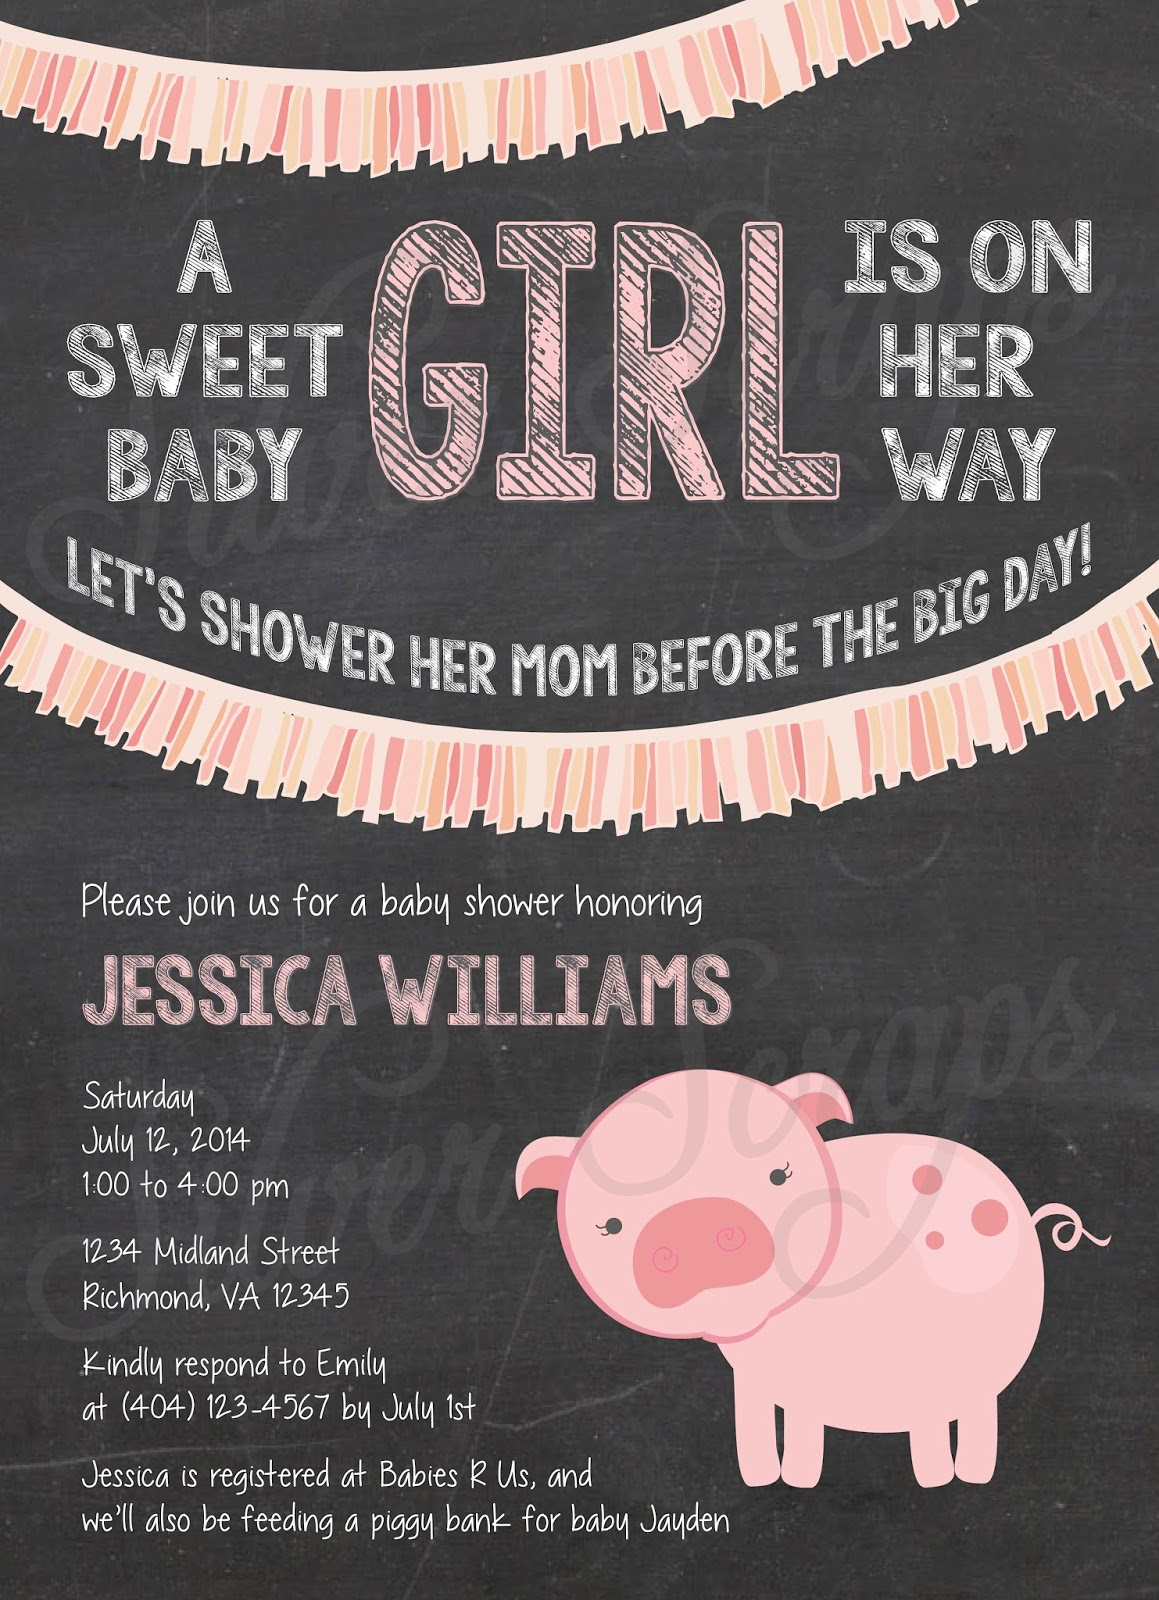 Chalkboard, Bunting and Pink Piggy Custom Girl Baby Shower Invitation - Fringe Pig Farm Garland Banner Flags Chalk Black White - 5 Printable Designs - Silver Scraps Peach Light Pink Blush Cream